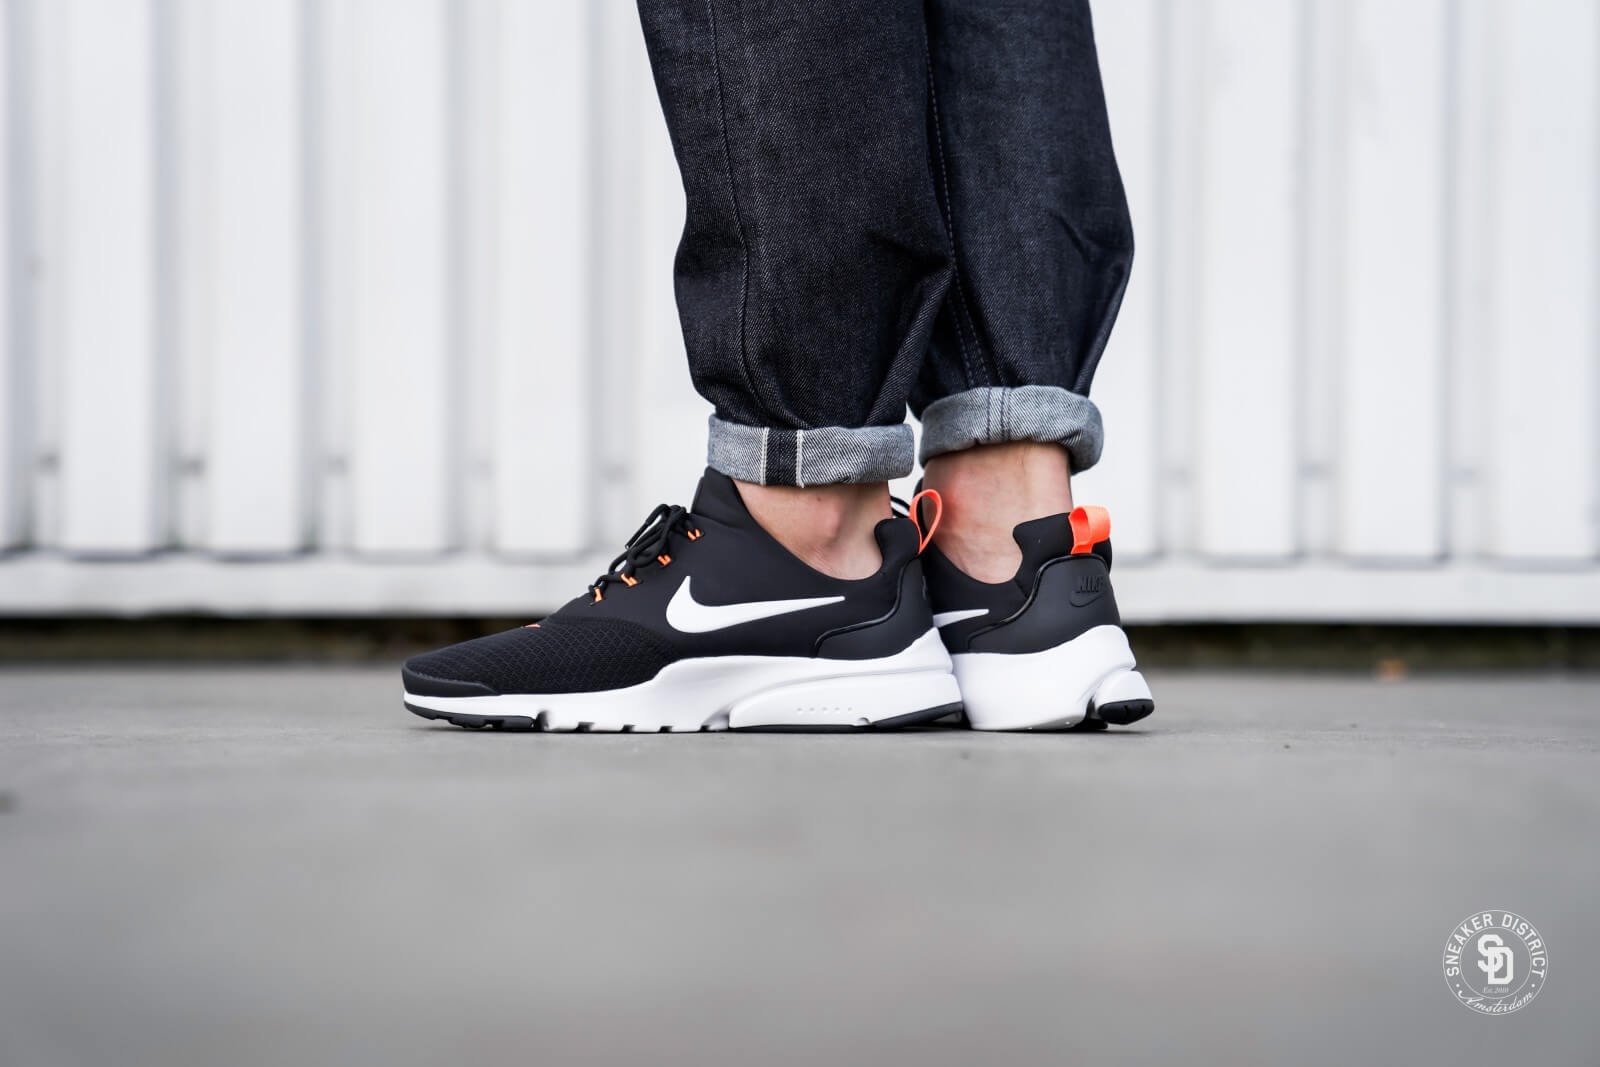 graduado Abastecer Capilares  Nike Presto Fly Just Do It Black/White-Total Orange - AQ9688-001